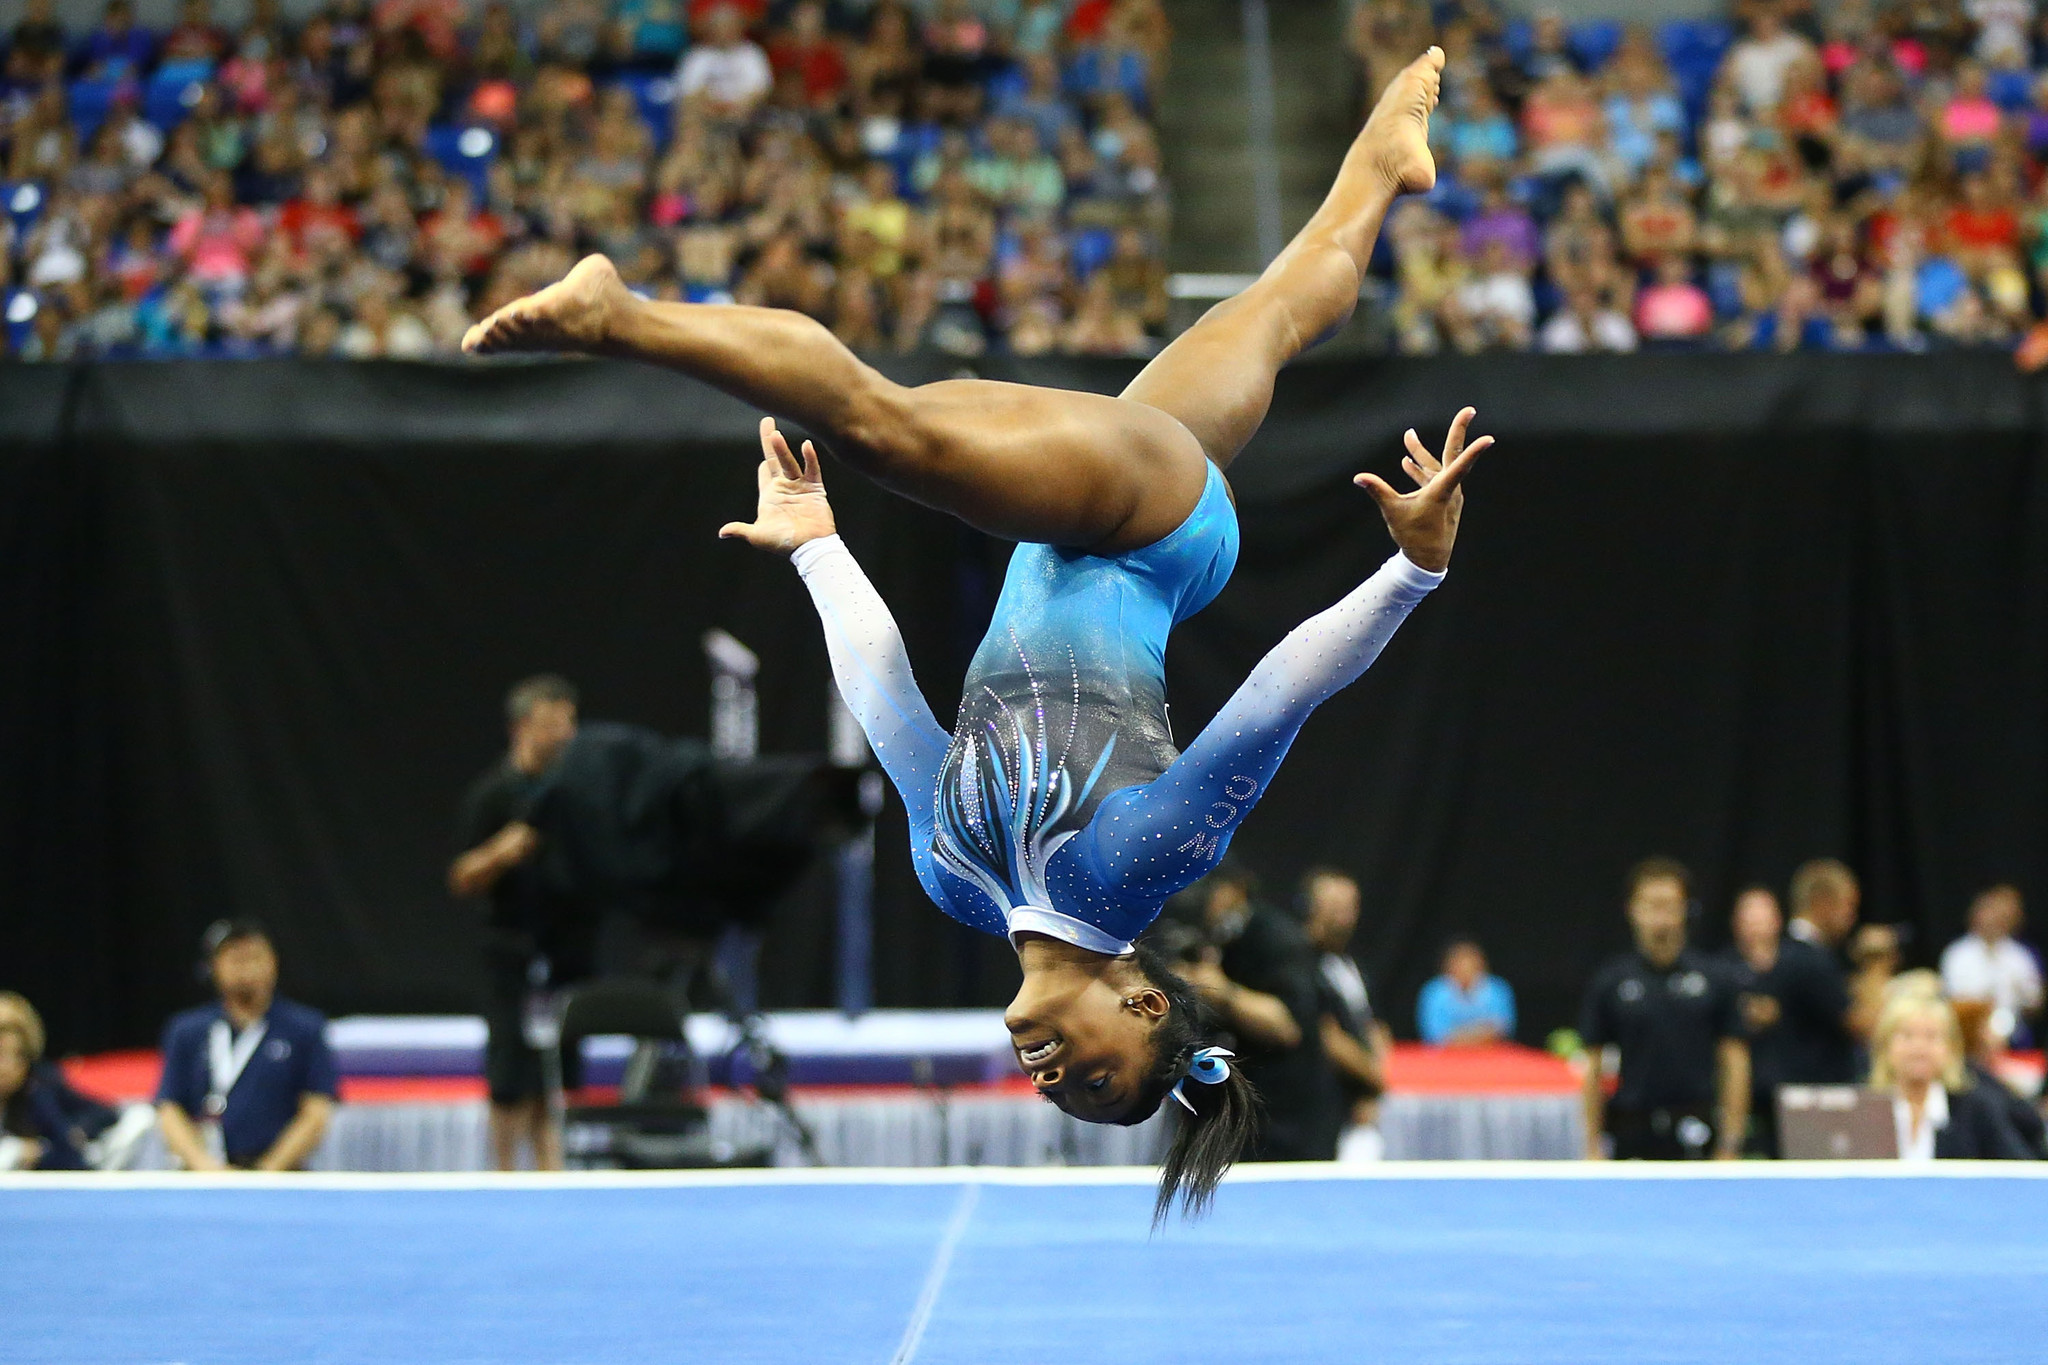 The floor exercise is about 40 feet long by 40 feet wide. The top layer is usually a carpet with a white marking around the perimeter. If the gymnast steps outside of this border, points are deducted from their scores.